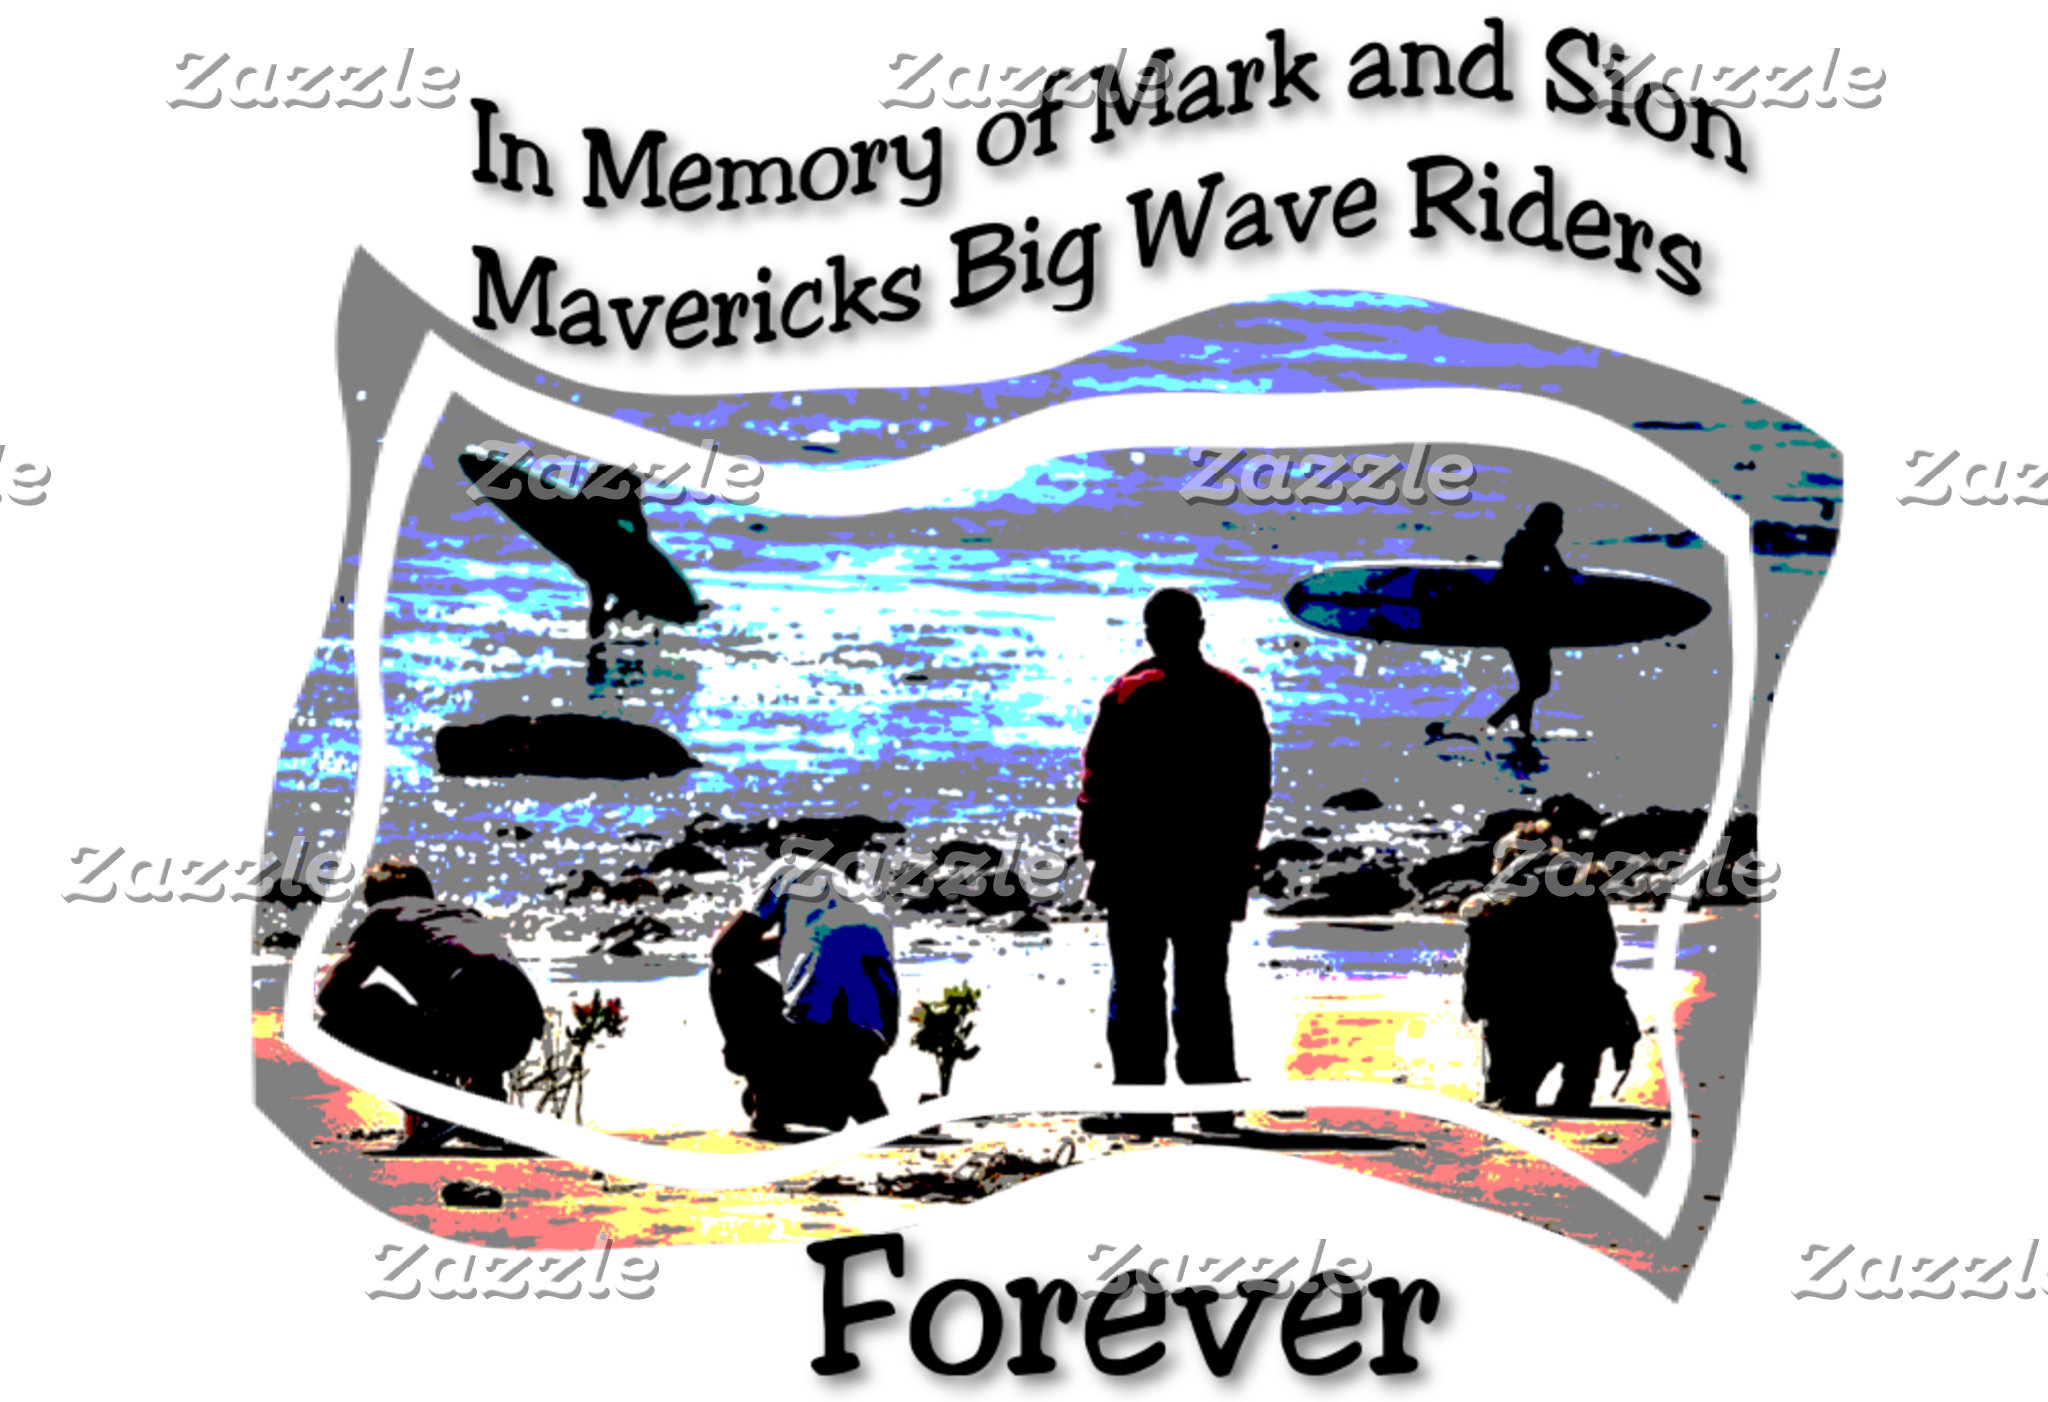 Mavericks Memorial